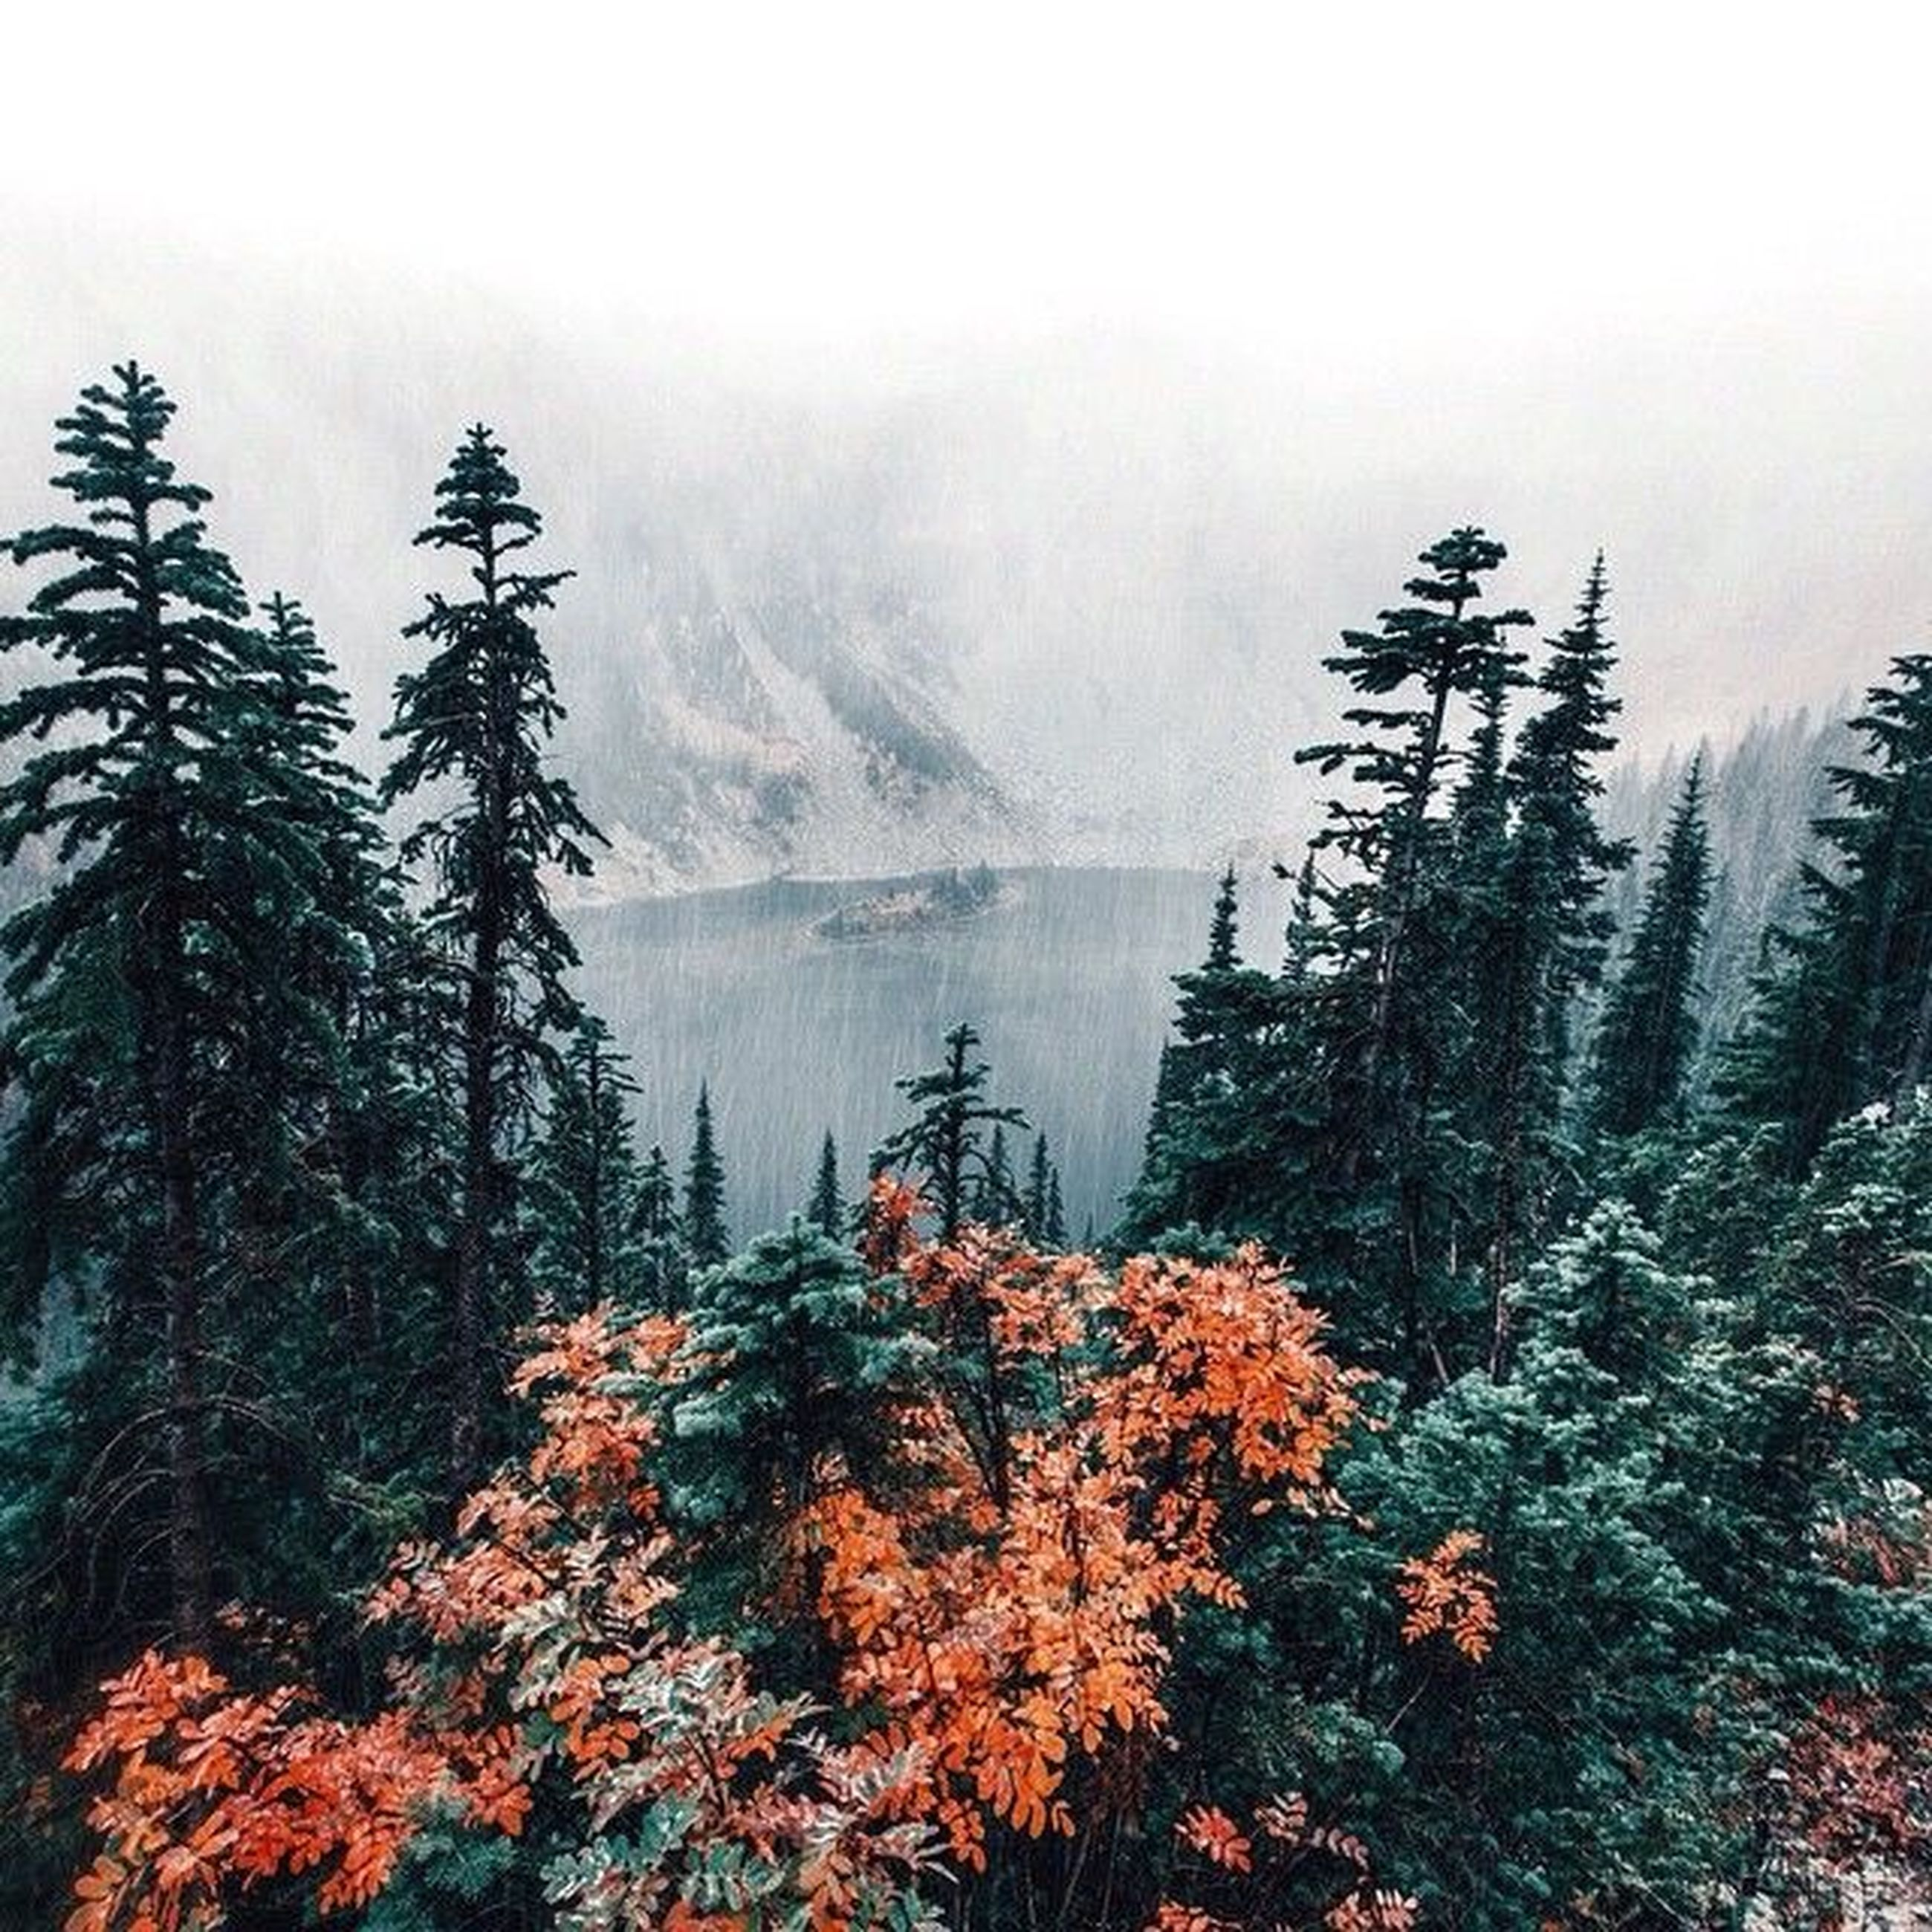 tree, tranquility, tranquil scene, beauty in nature, scenics, mountain, nature, growth, fog, sky, foggy, weather, non-urban scene, plant, idyllic, forest, season, water, outdoors, day